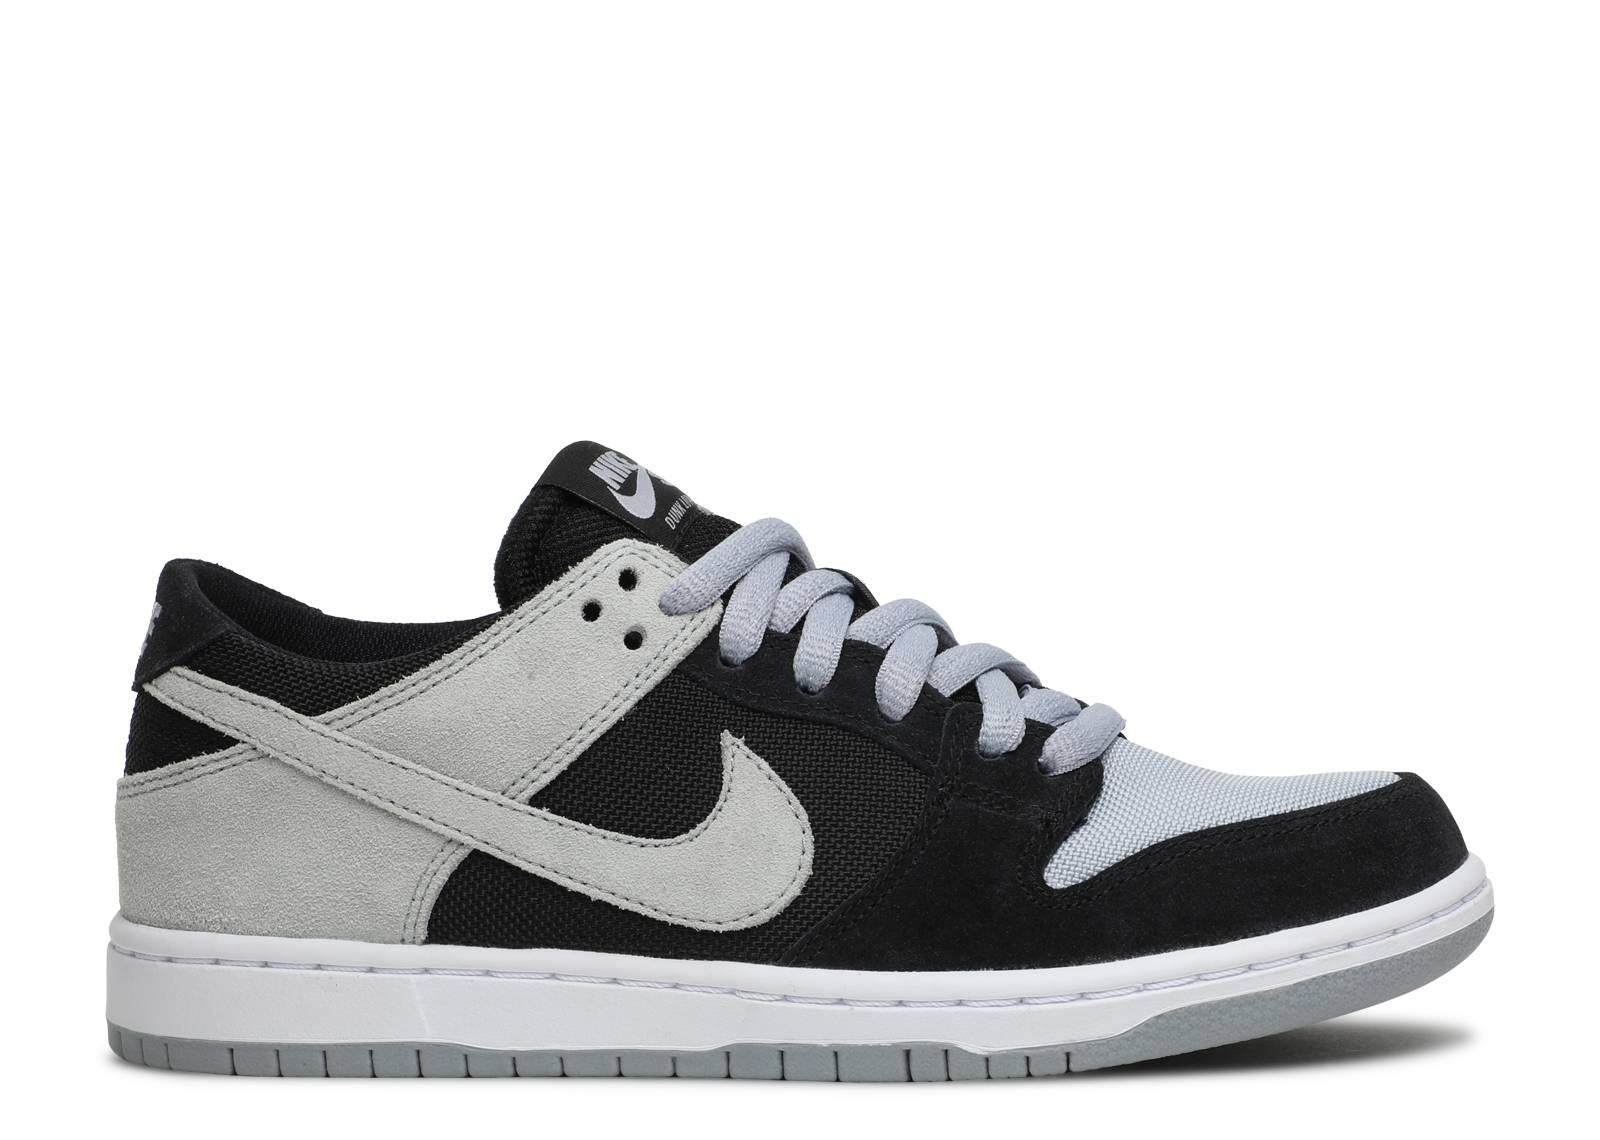 6d8d38eee0b Nike Sb Zoom Dunk Low Pro - Nike - 854866 001 - black wolf grey ...